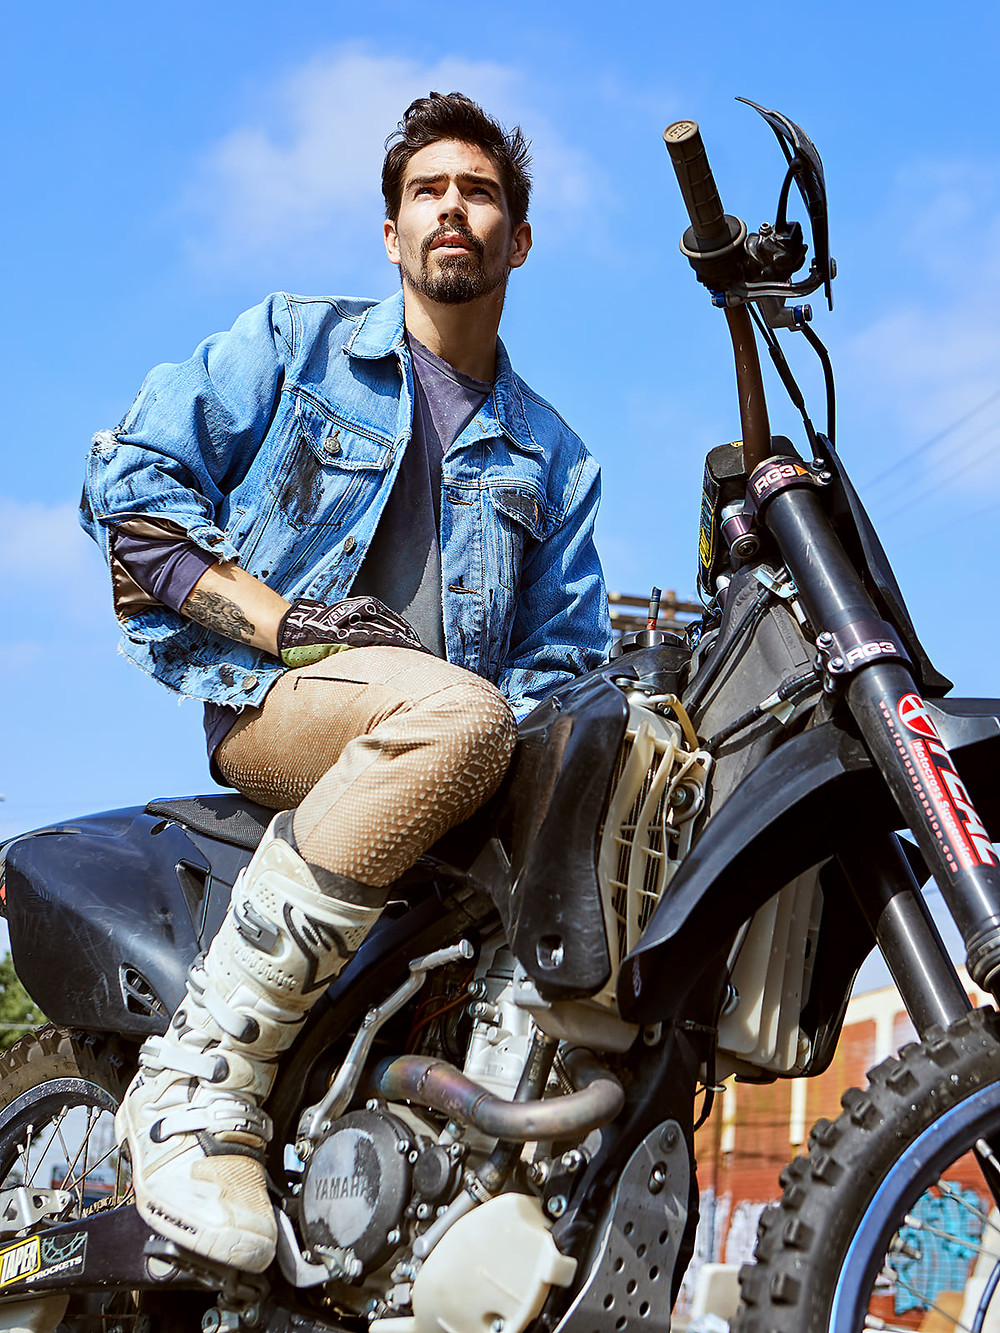 Jordan sits on his motorcycle wearing clothes that he designed for Strapped Mfg. with a big, blue sky in the background